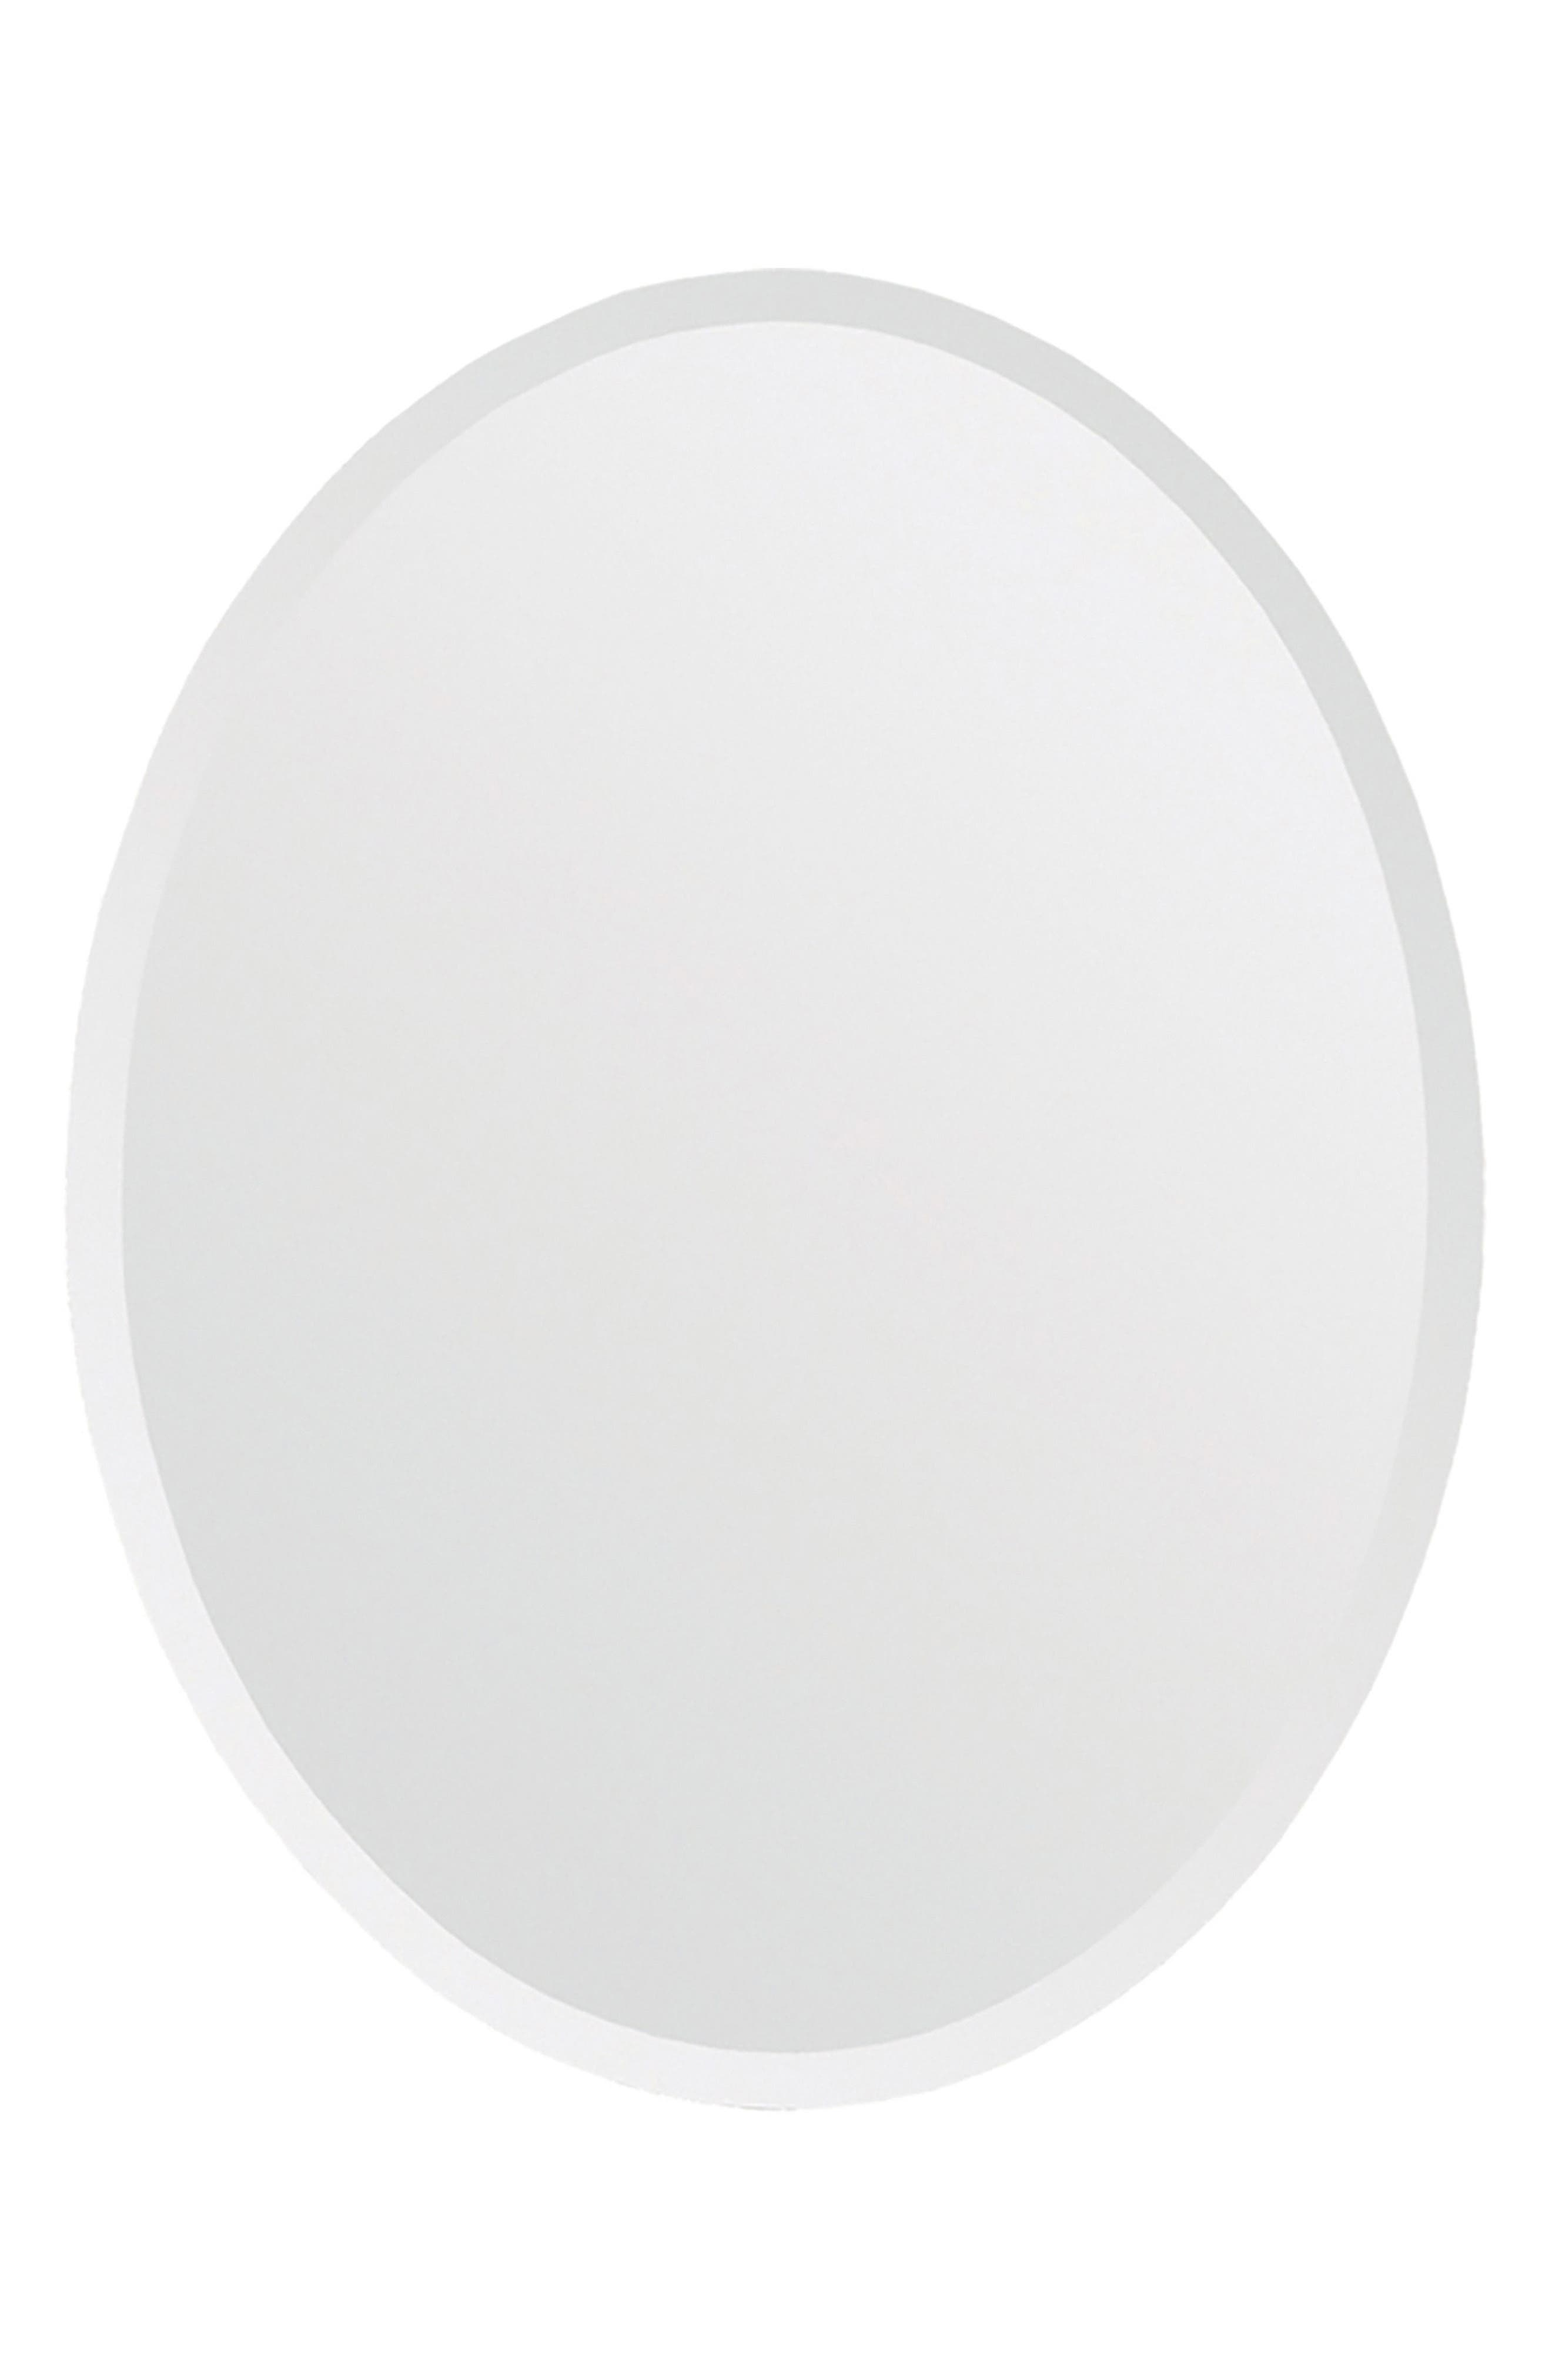 Main Image - Renwil Zsa Zsa Oval Mirror